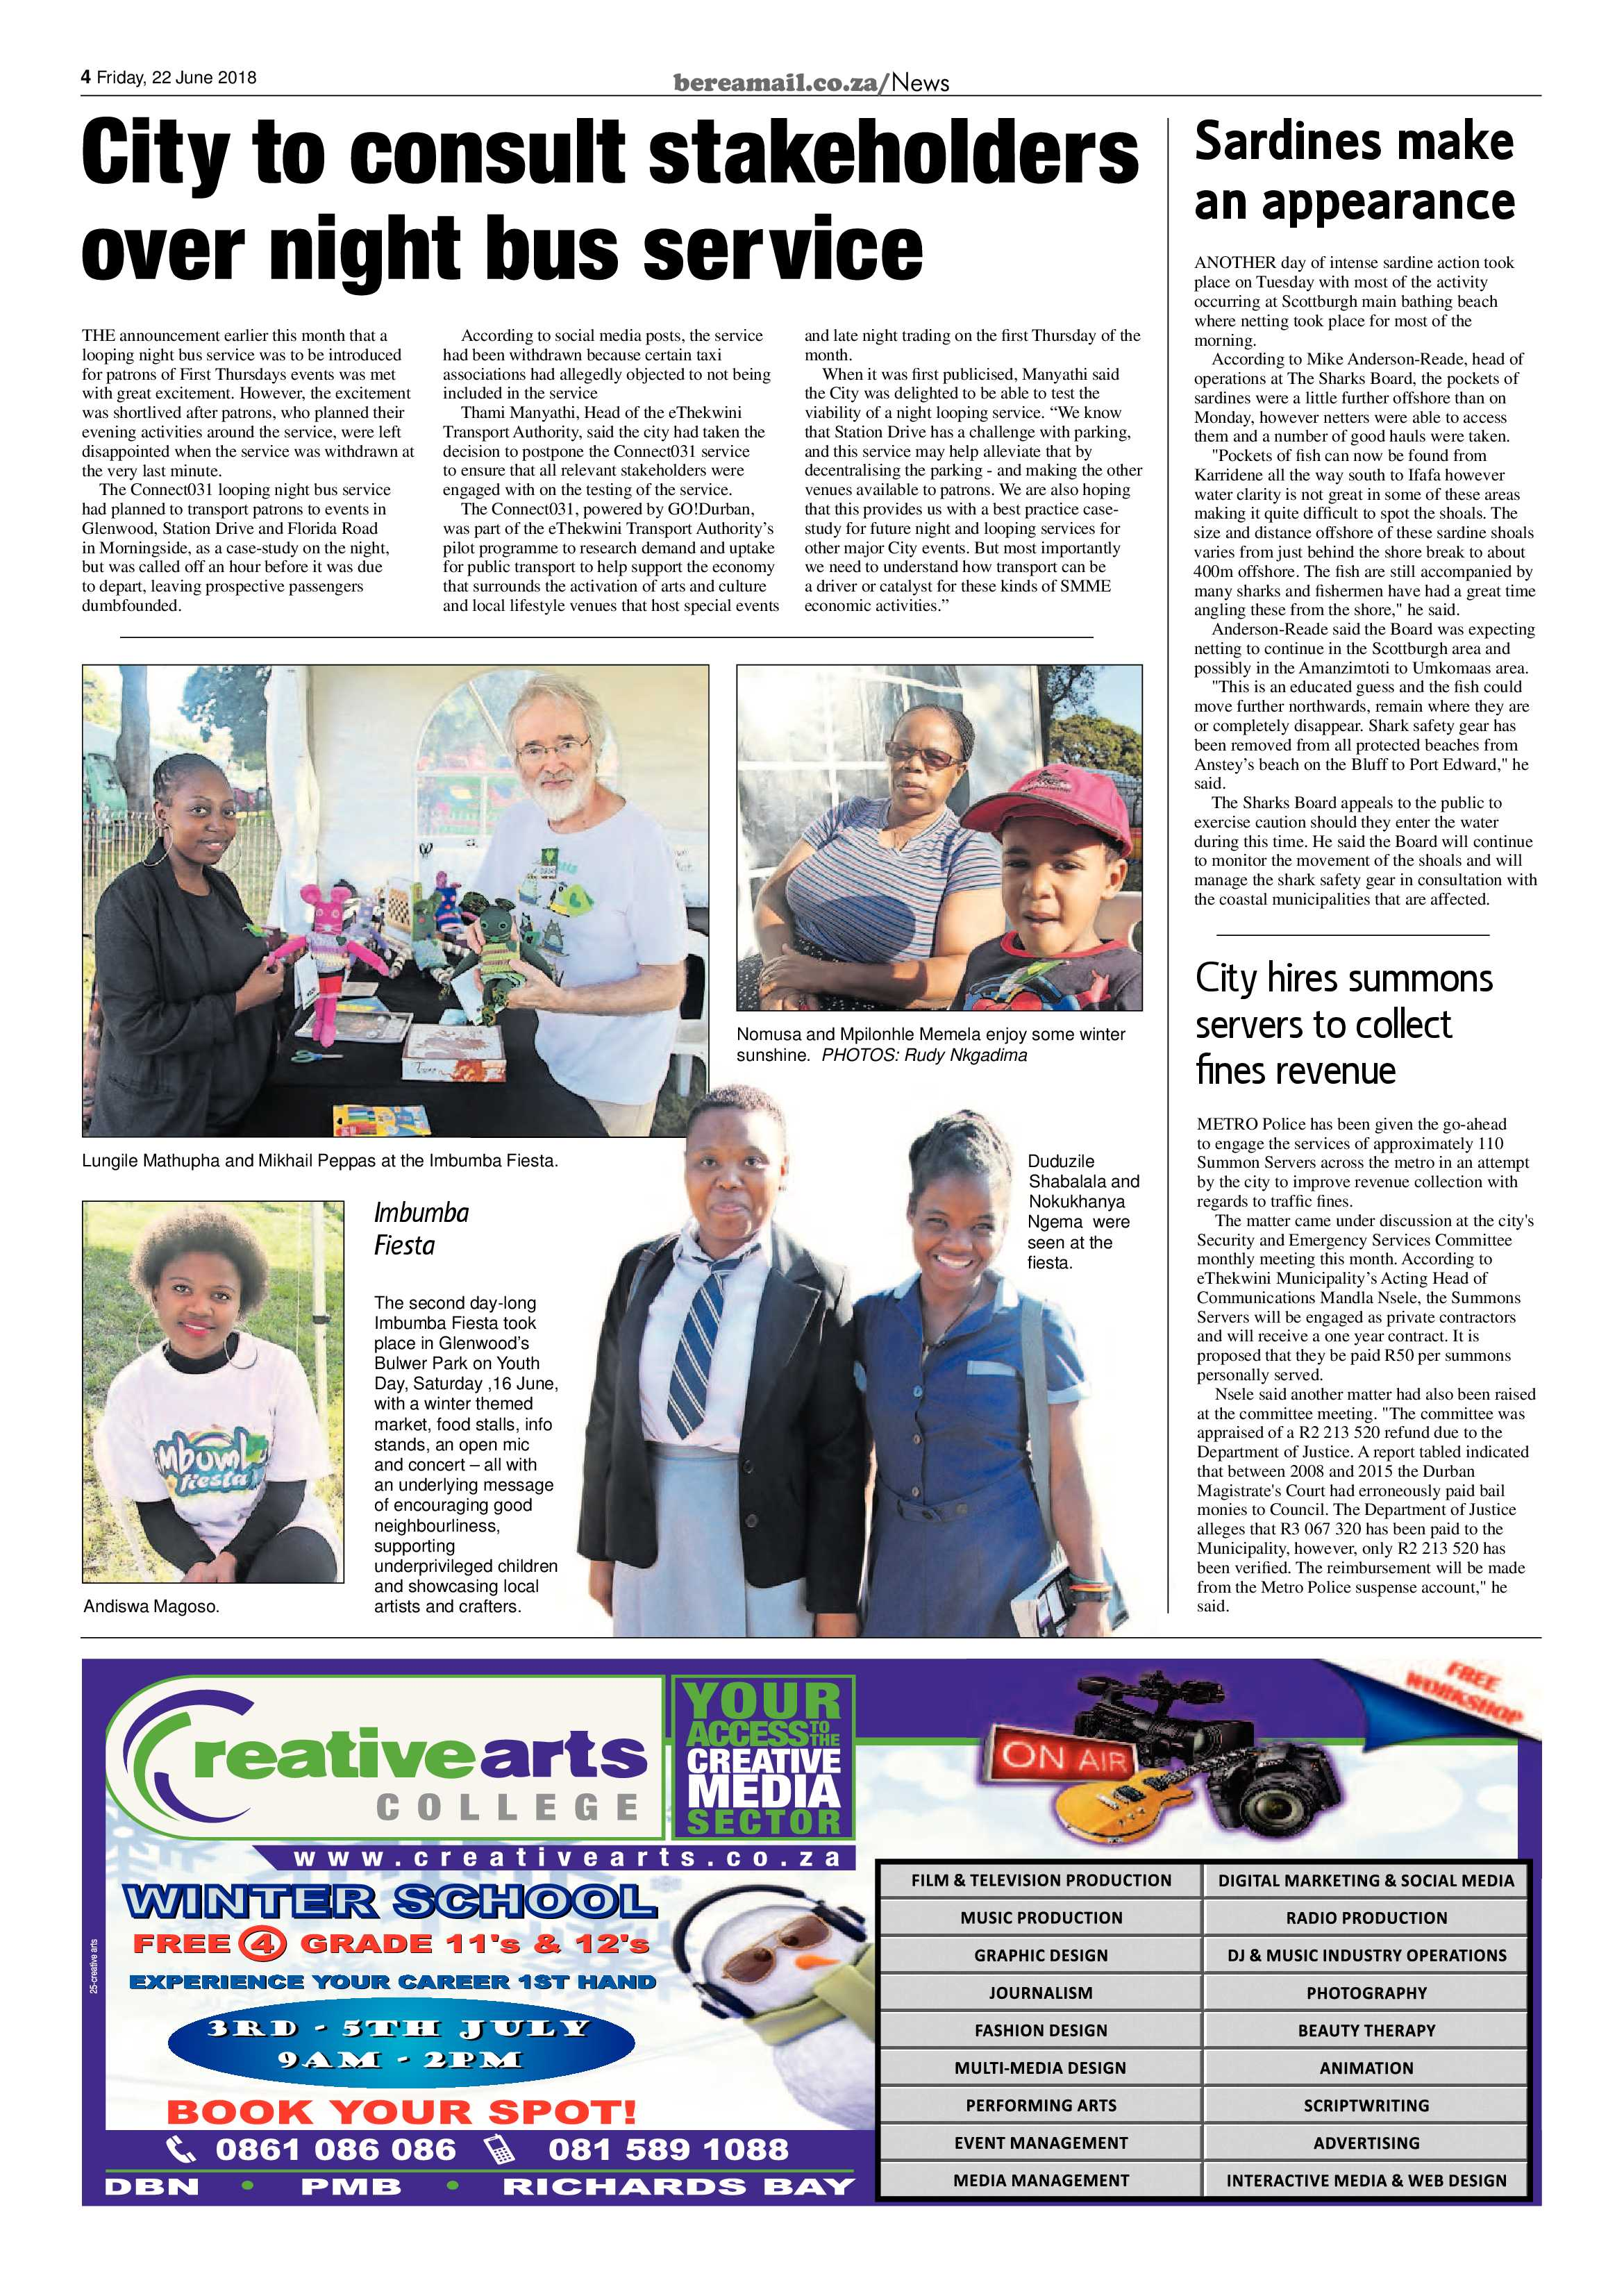 berea-mail-22-june-2018-epapers-page-4